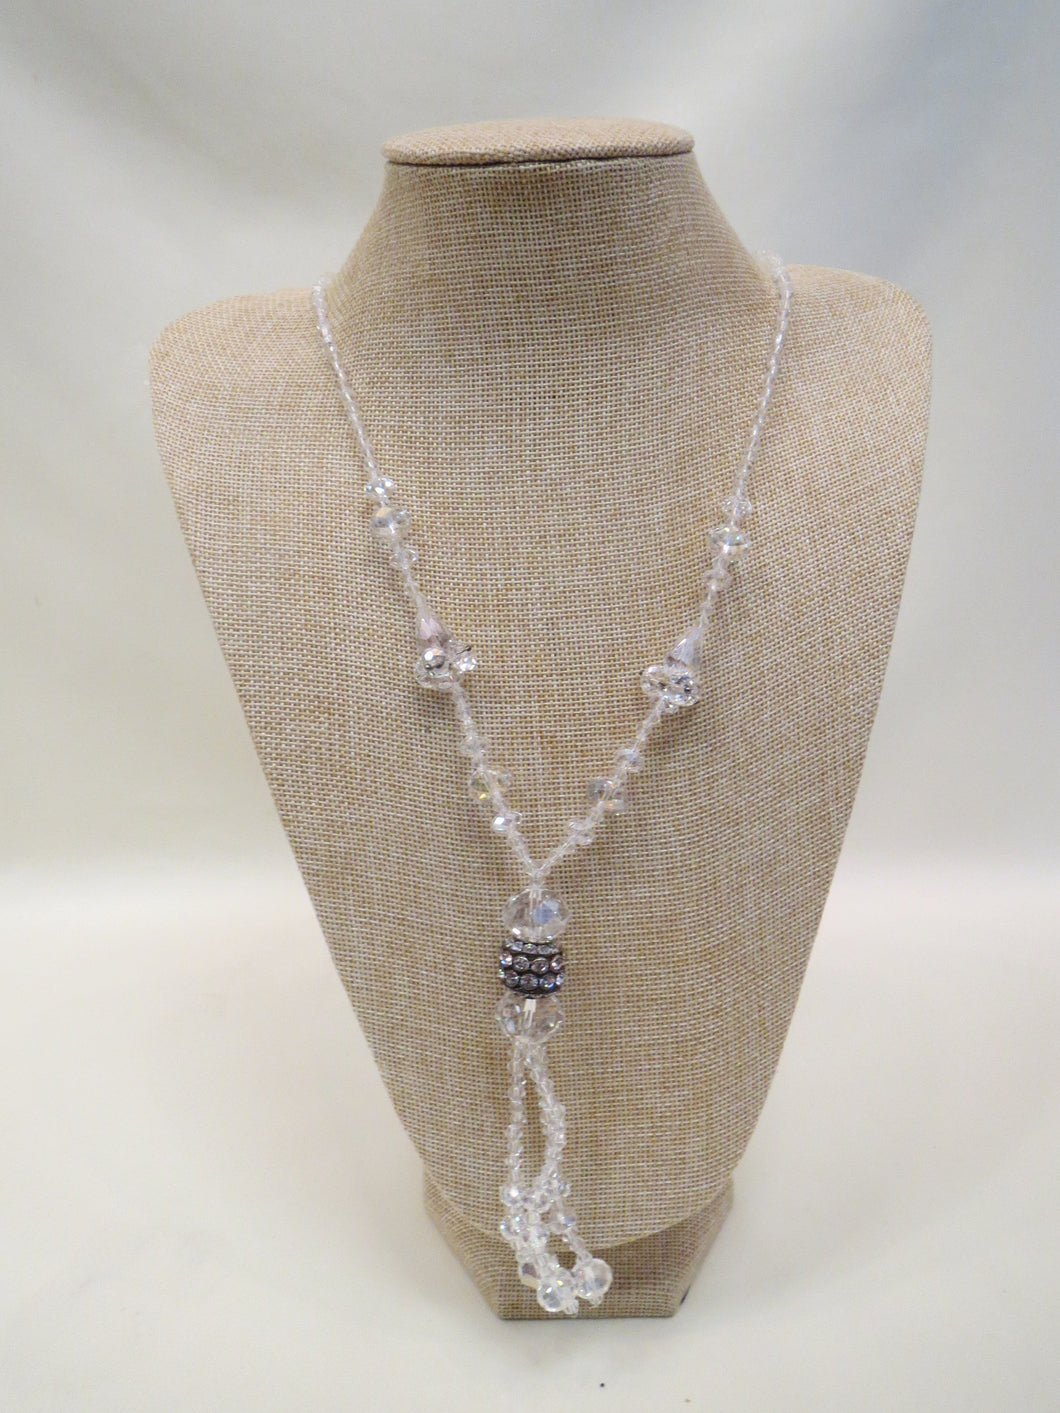 ADO | Crystal Beaded Necklace w/ Tassel - All Decd Out